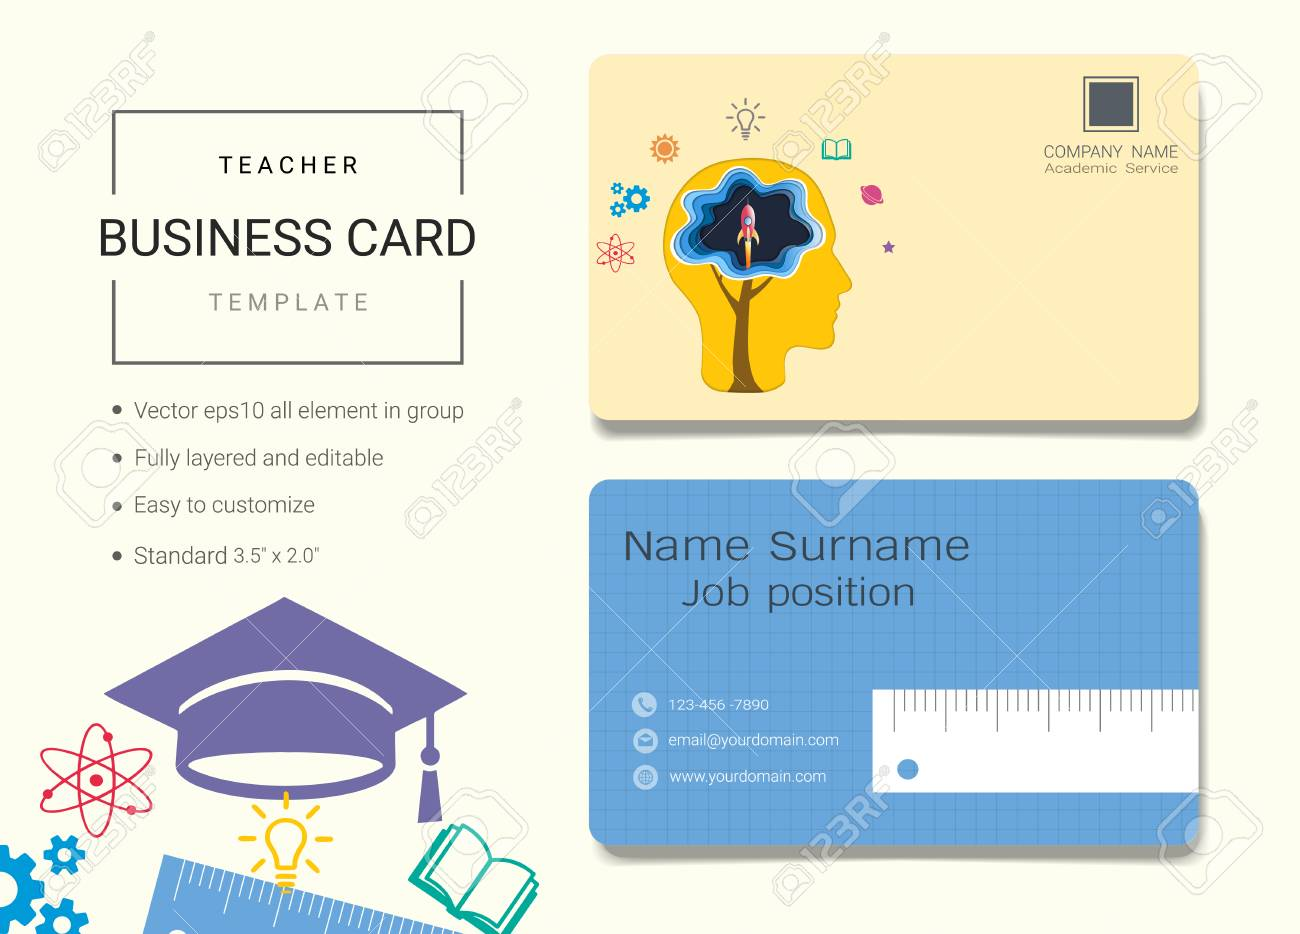 Teacher business card or name card template simple style also teacher business card or name card template simple style also modern and elegant with education friedricerecipe Choice Image